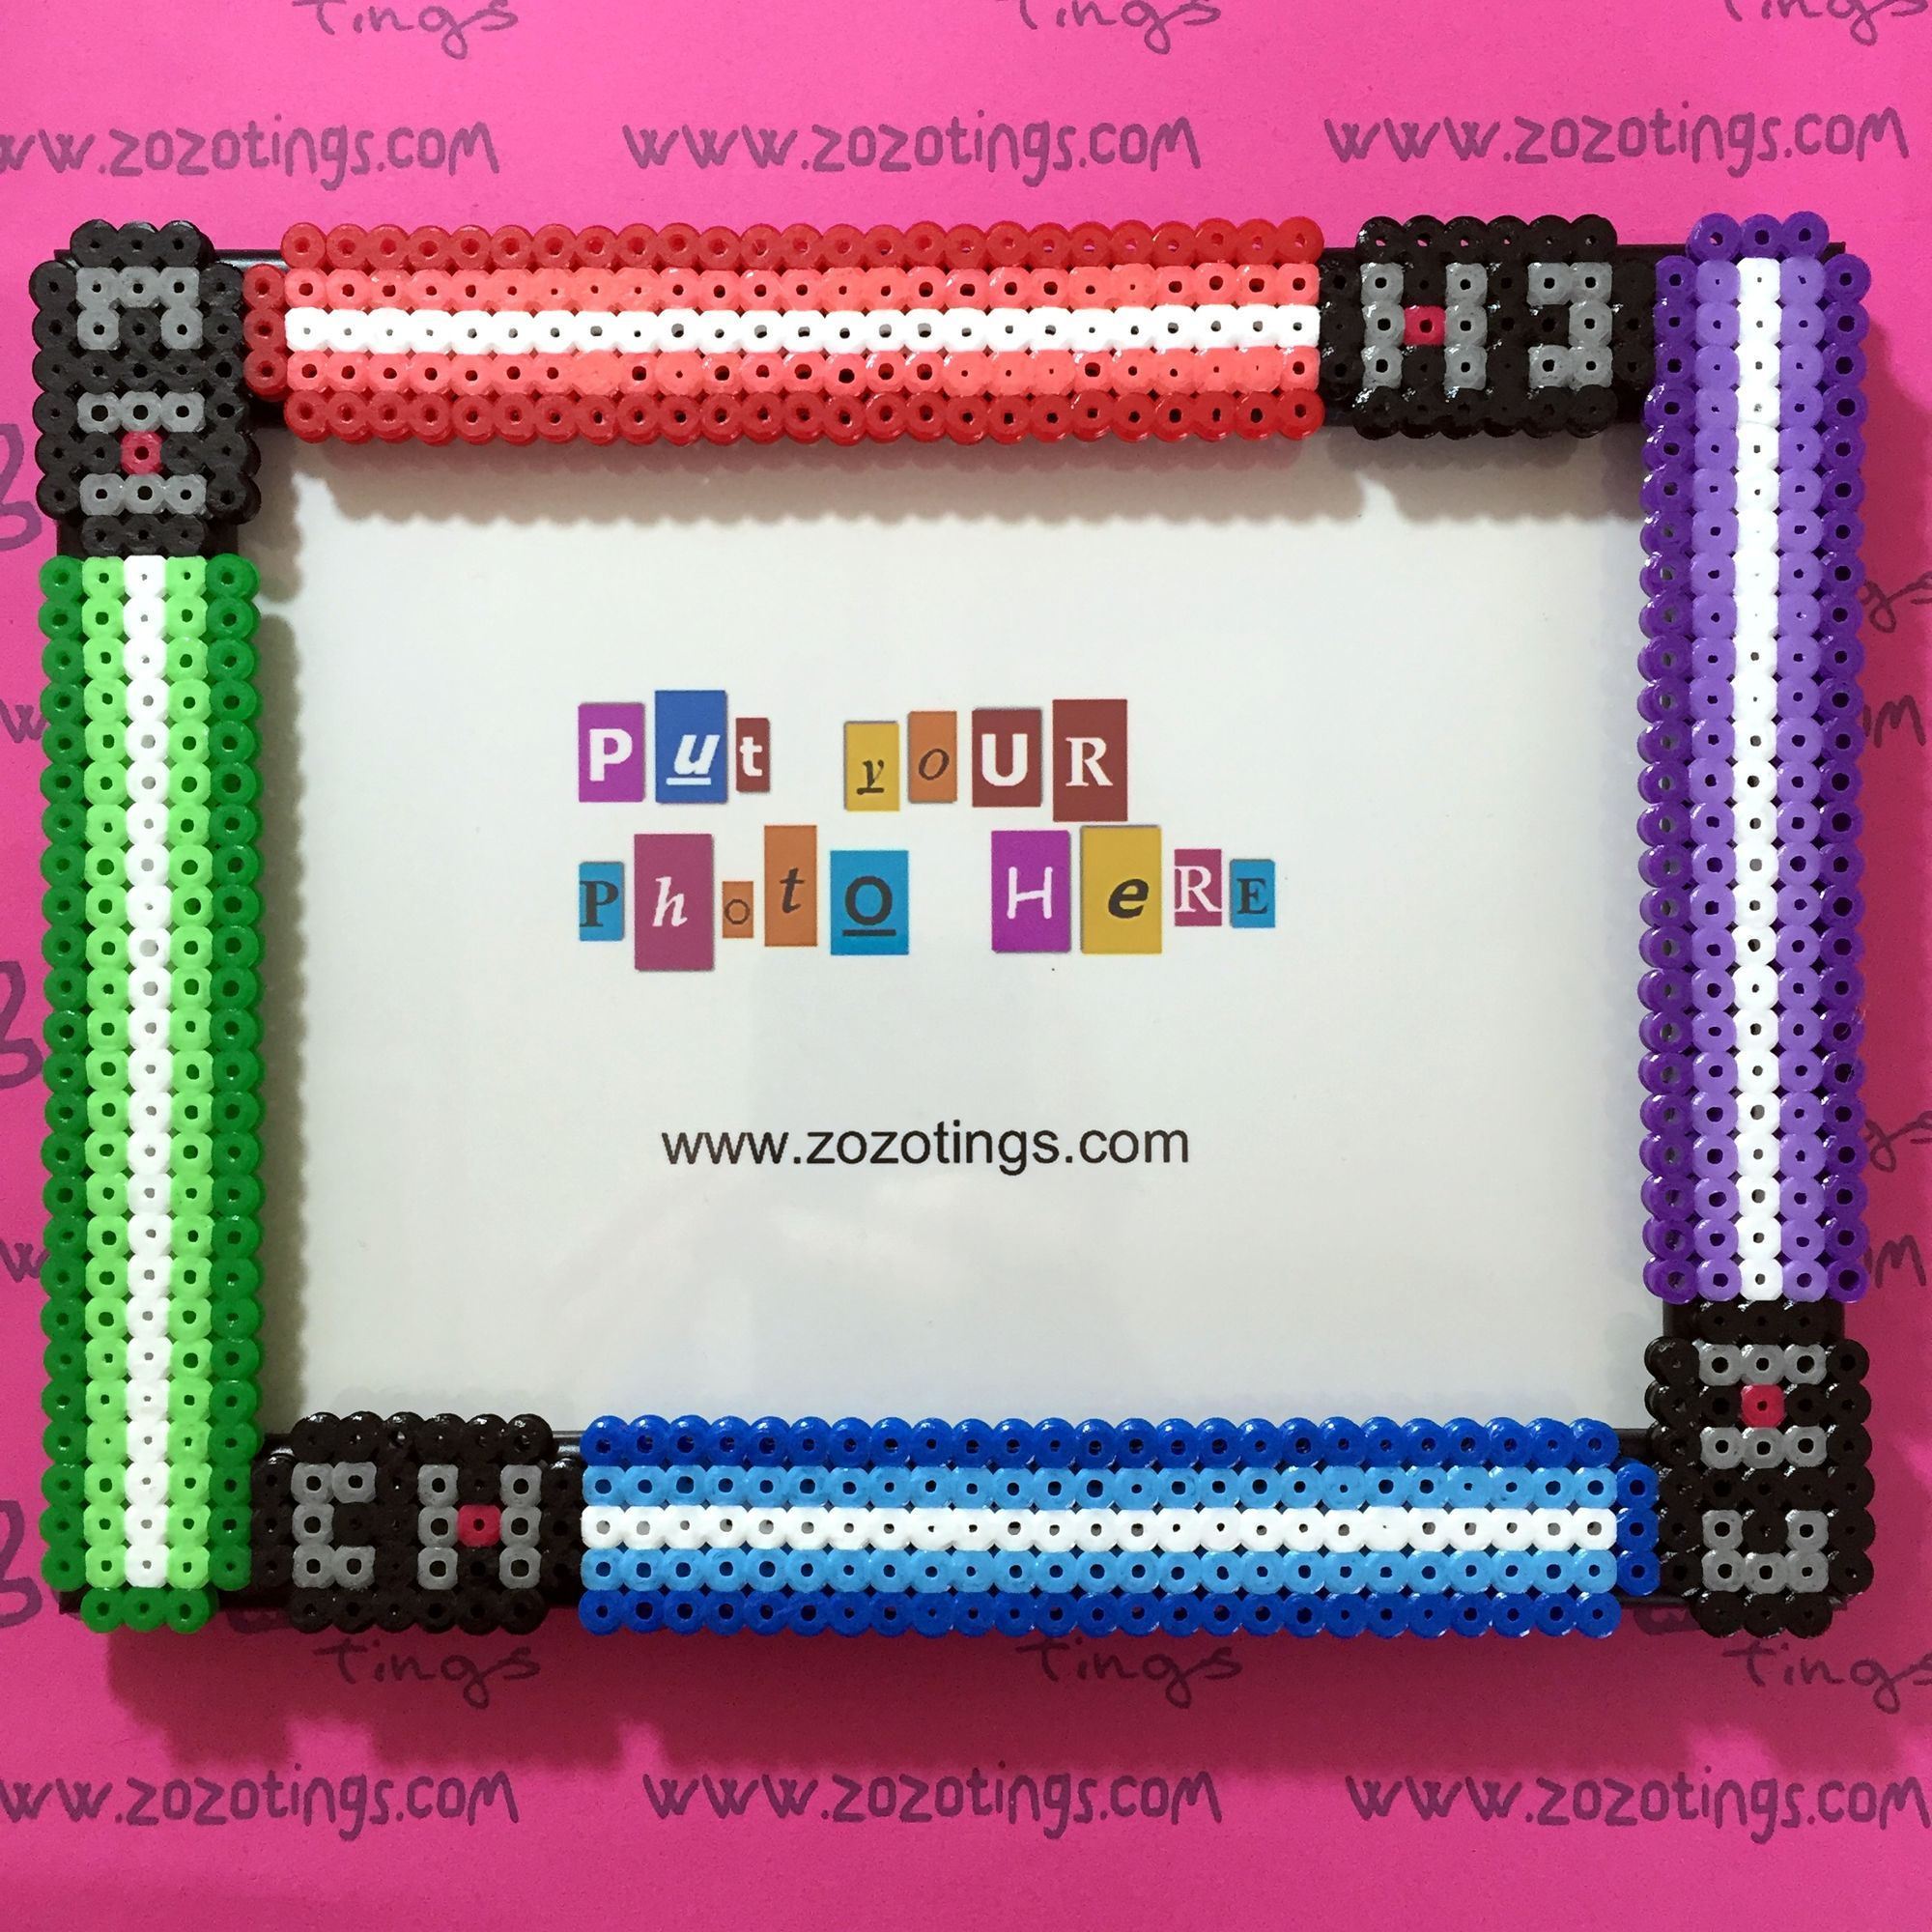 Star Wars Lightsaber Pixel Photo Frame | Bügelperlen, Bügel und Perlen